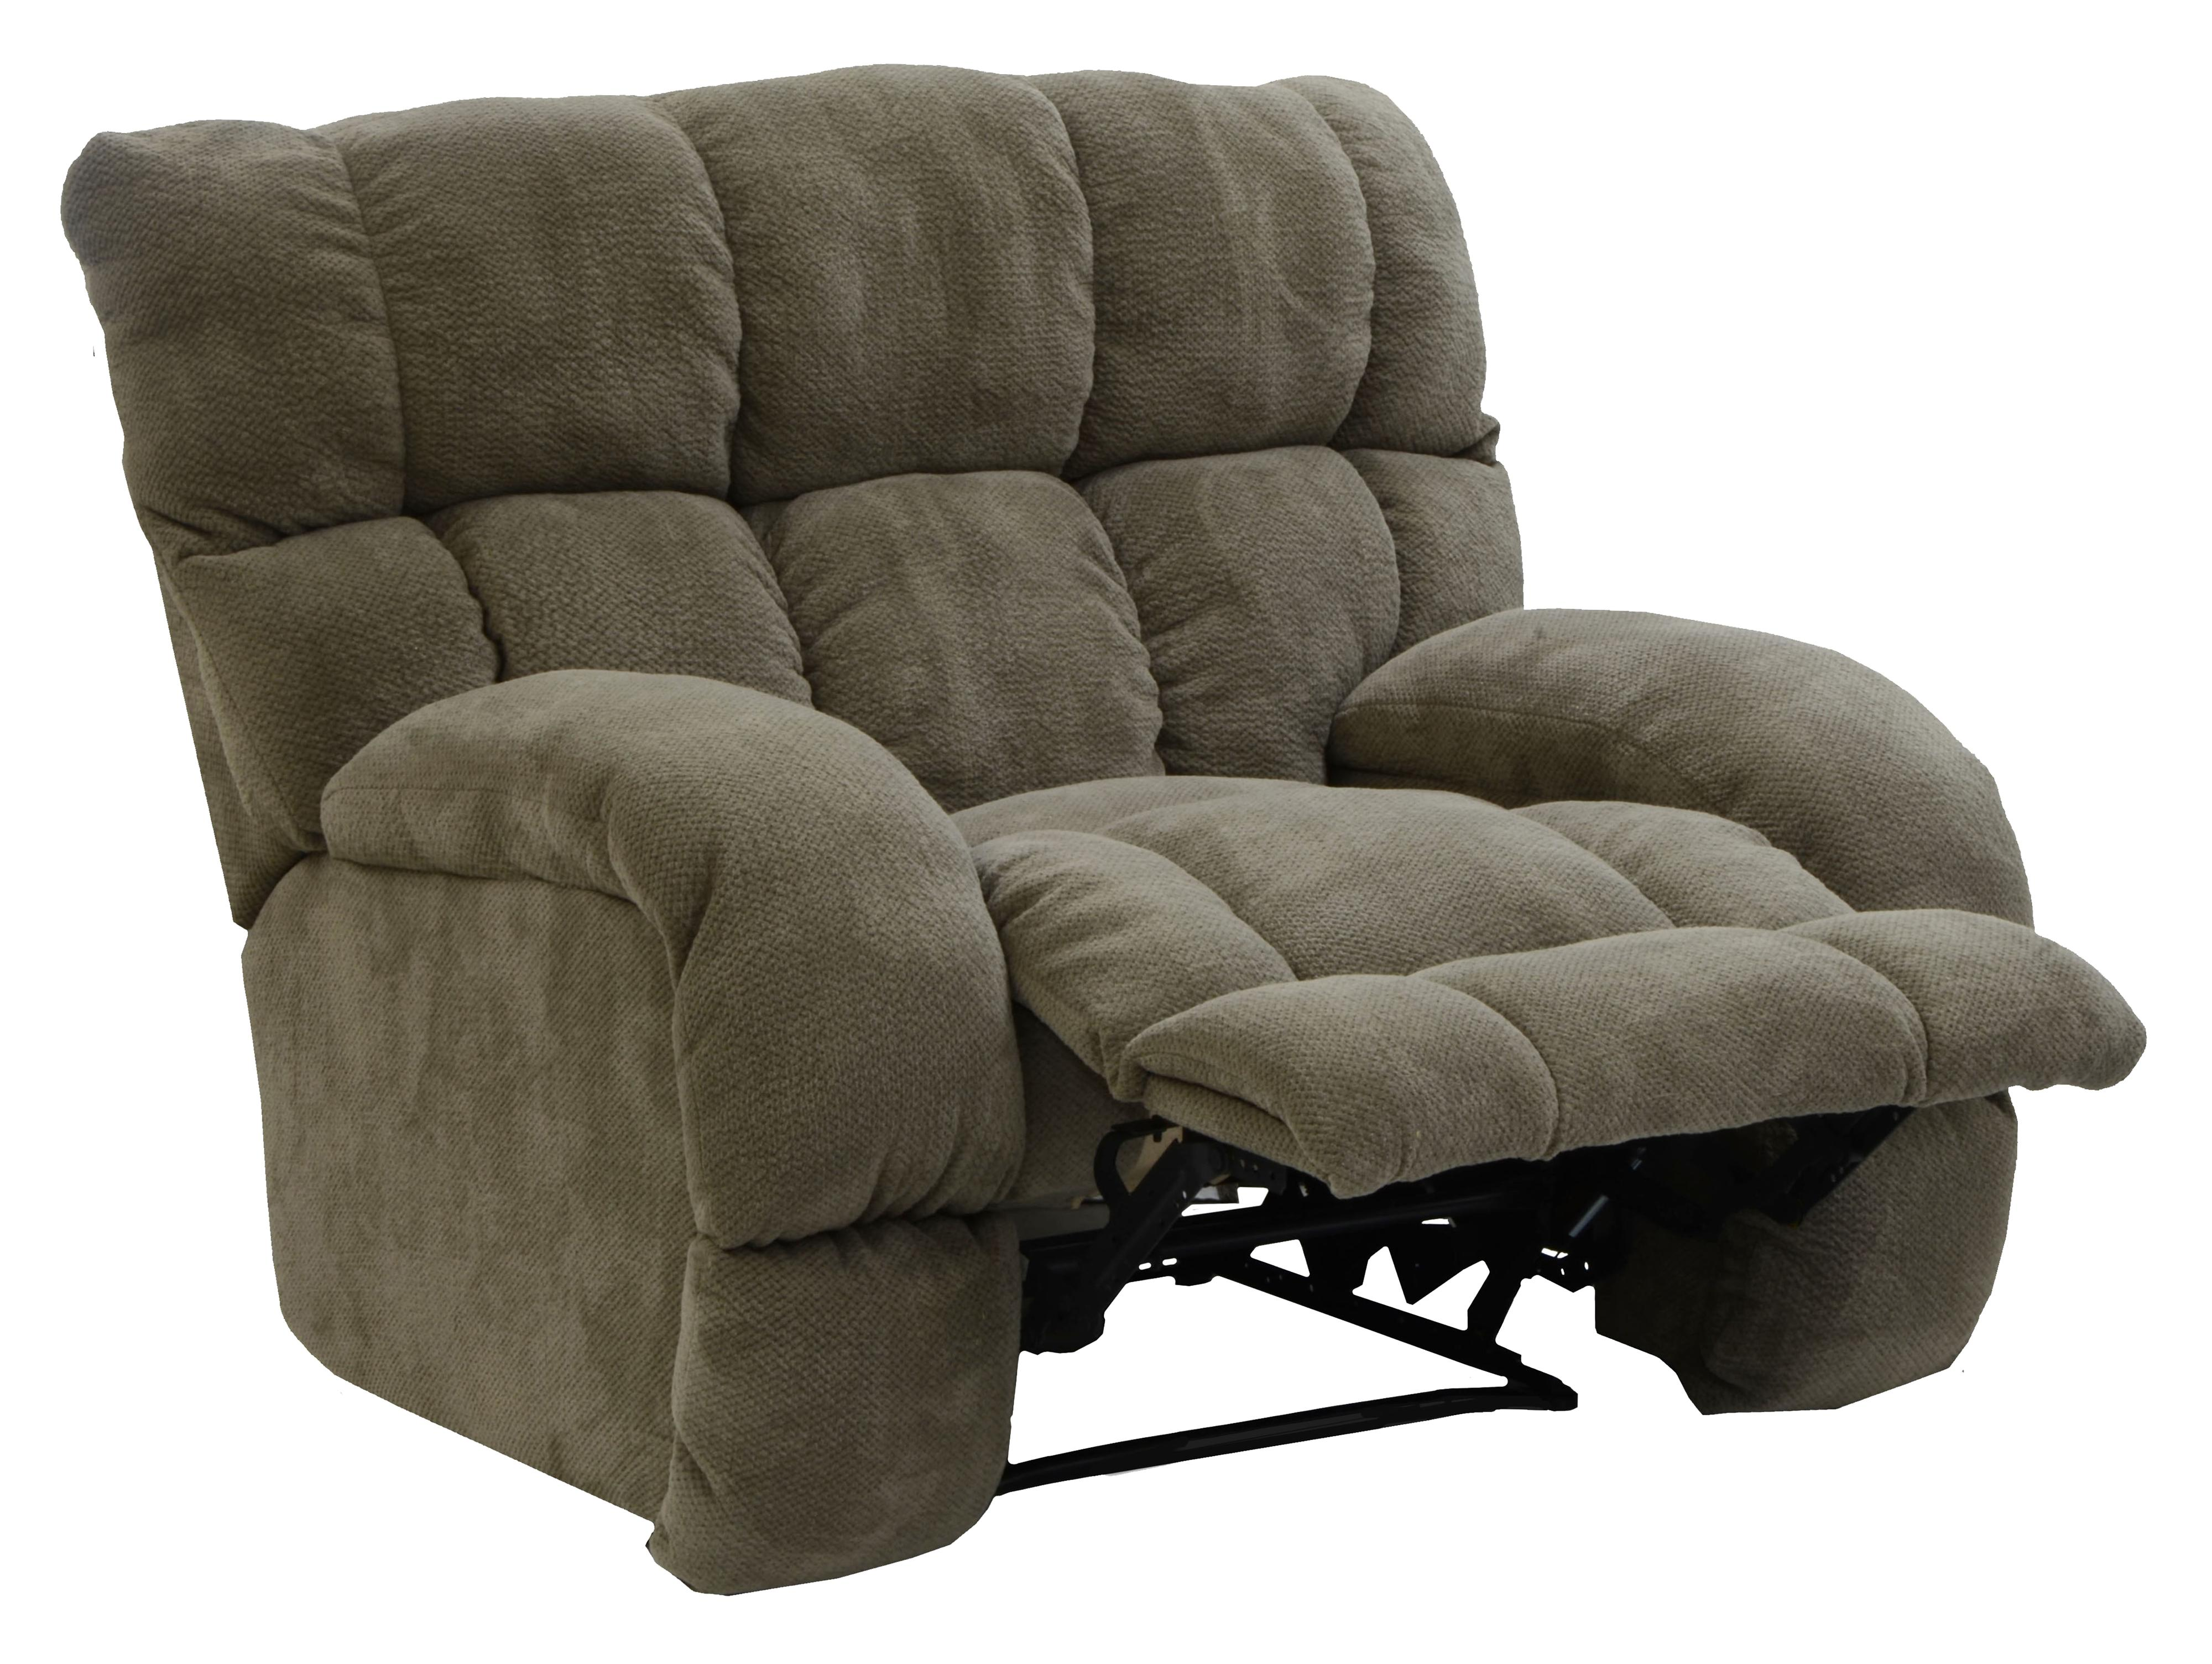 Siesta Lay Flat Recliner with Extra Wide Seat by Catnapper ...